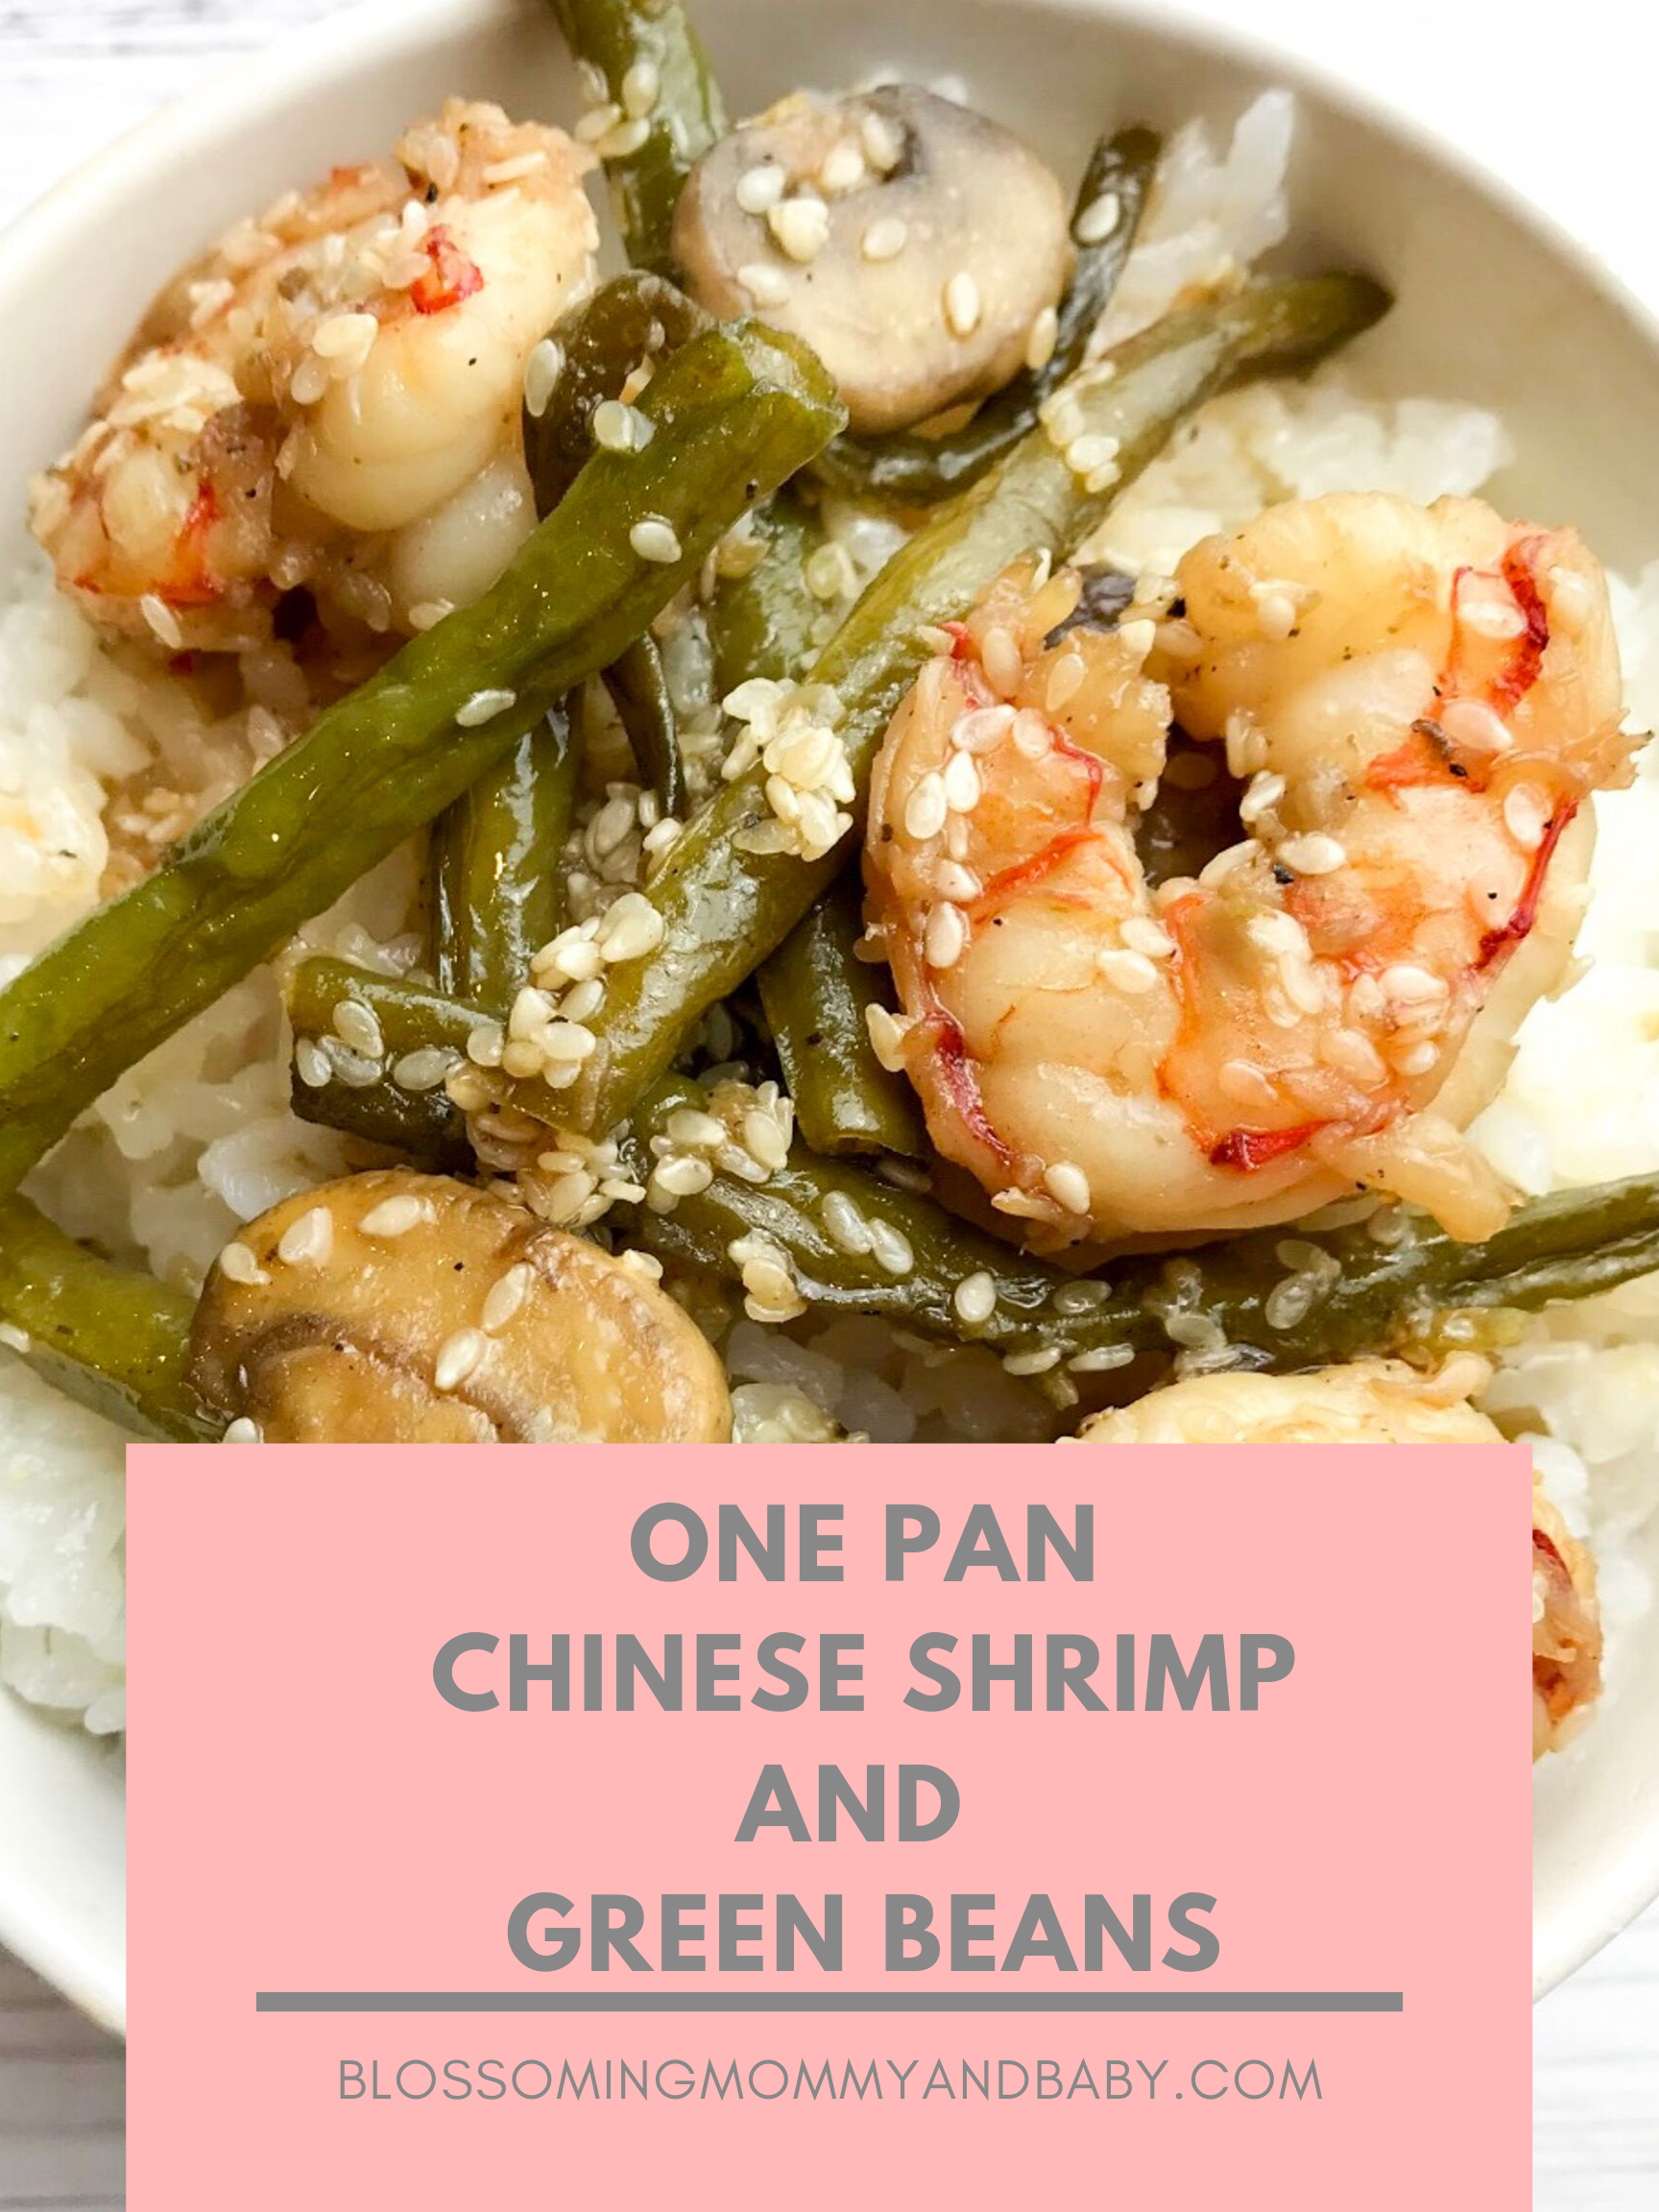 One Pan Chinese Shrimp and Green Beans